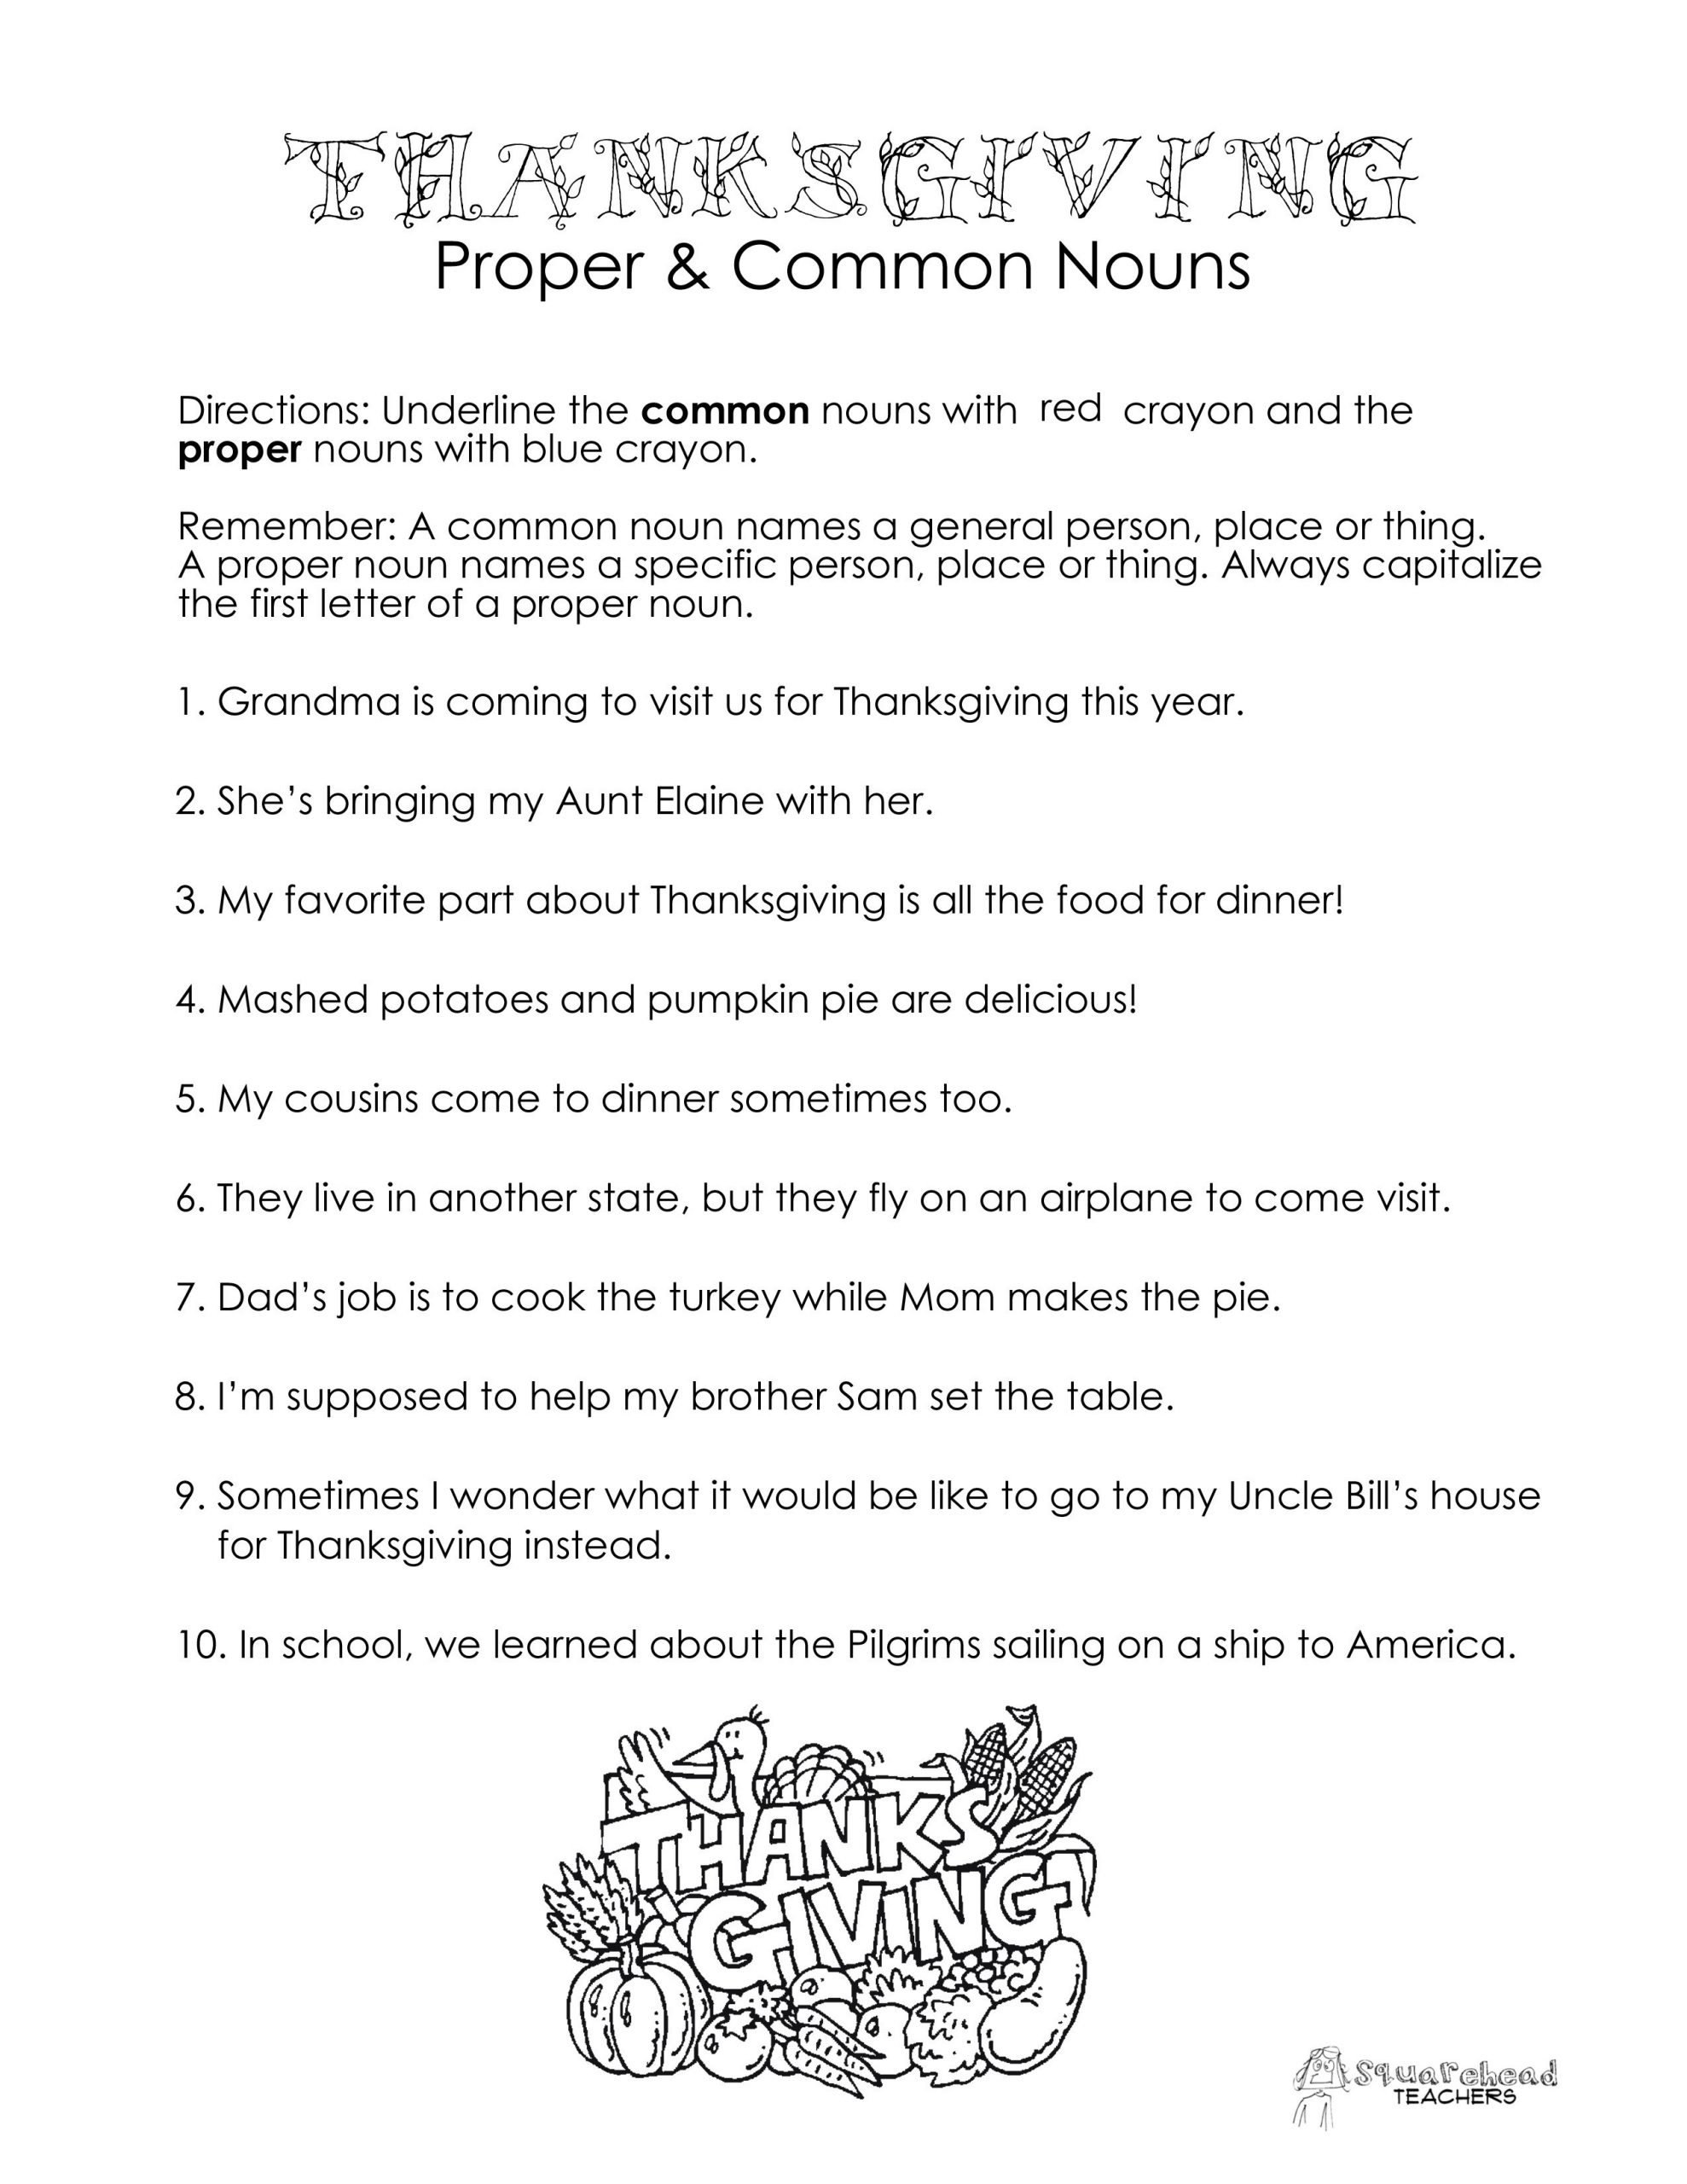 Free Proper Noun Worksheets Thanksgiving Mon Vs Proper Nouns Worksheet